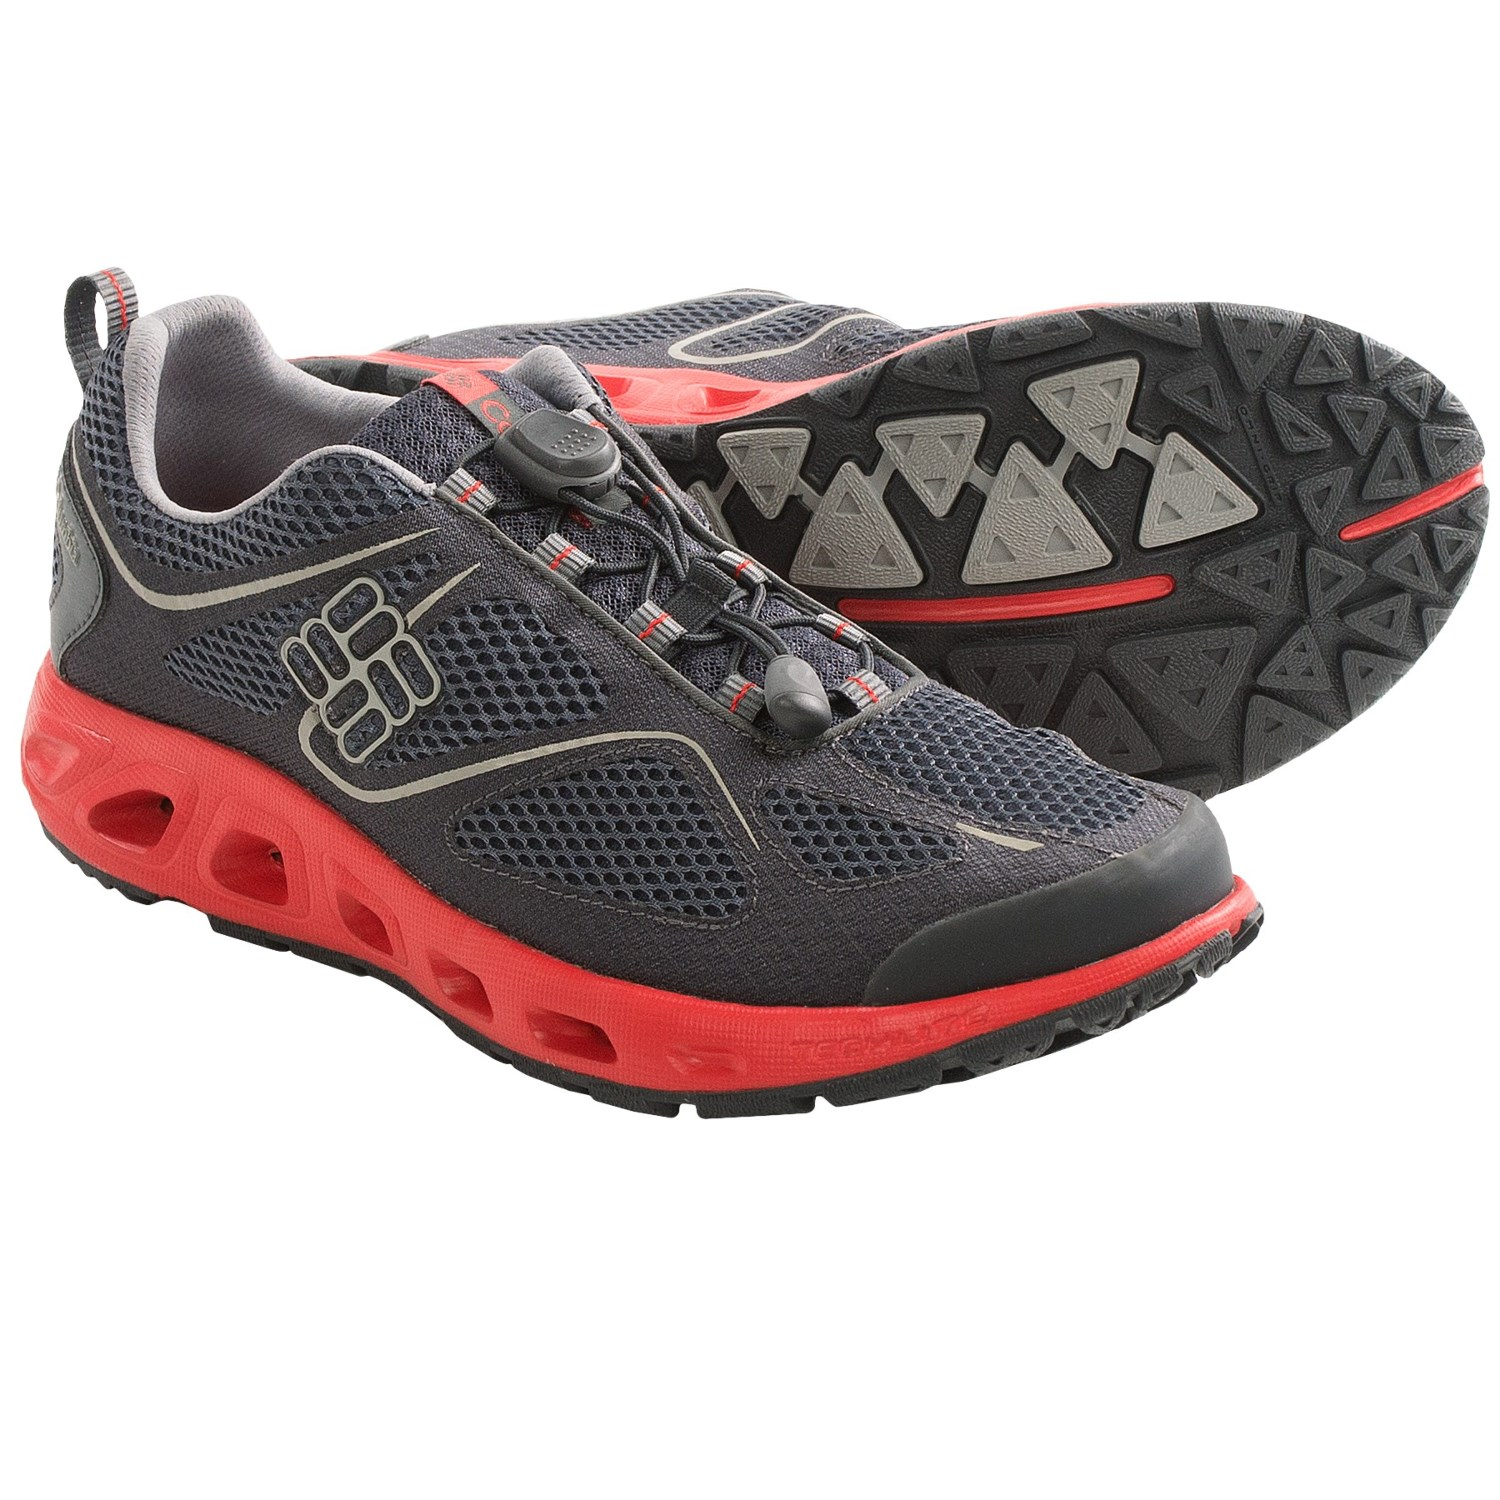 Water Aerobics shoes - Columbia Sportswear Drainmaker II Water